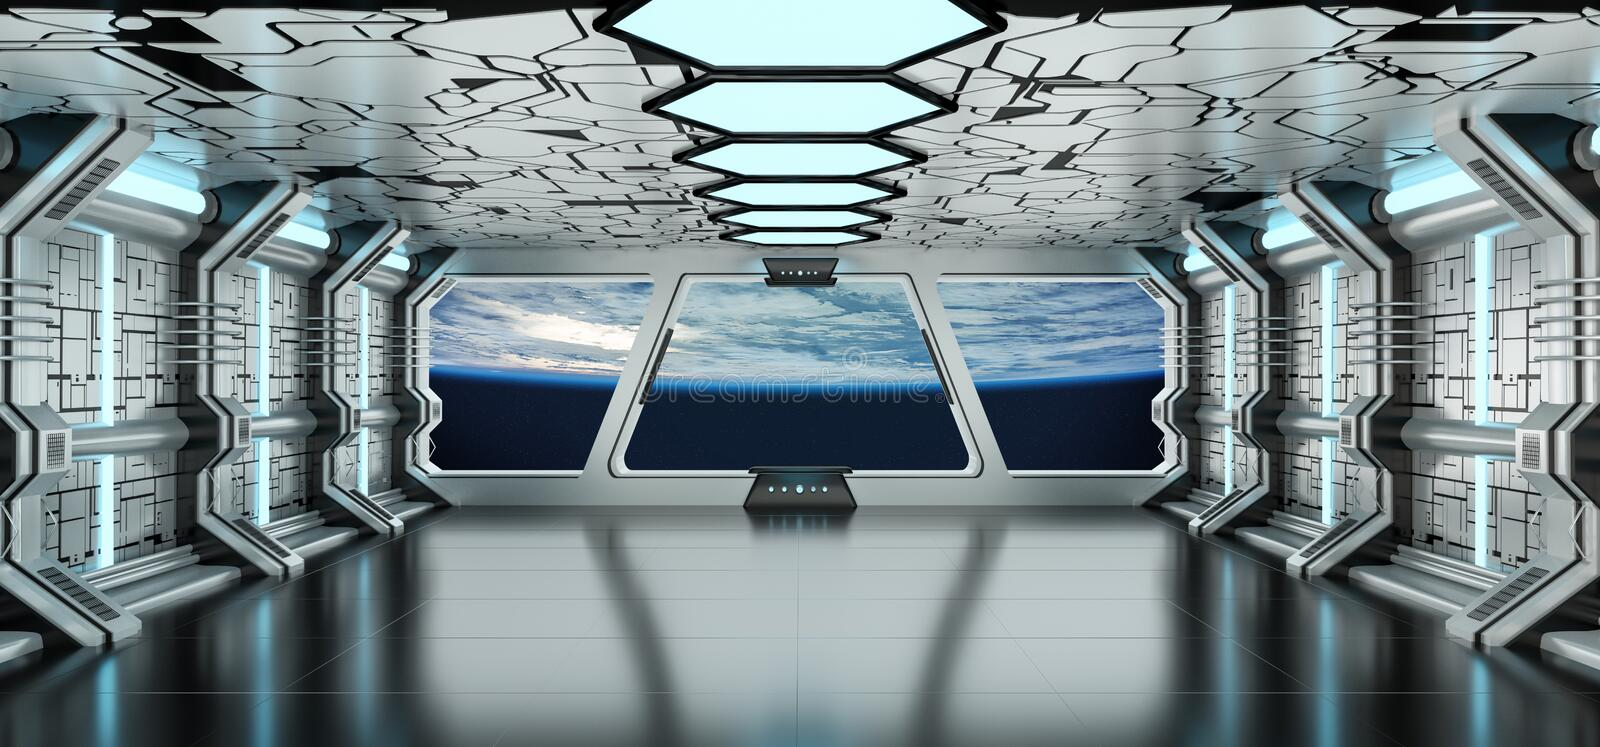 Spaceship interior with view on the planet Earth 3D rendering elements of this image furnished by NASA. Spaceship white and blue interior with view on space and vector illustration